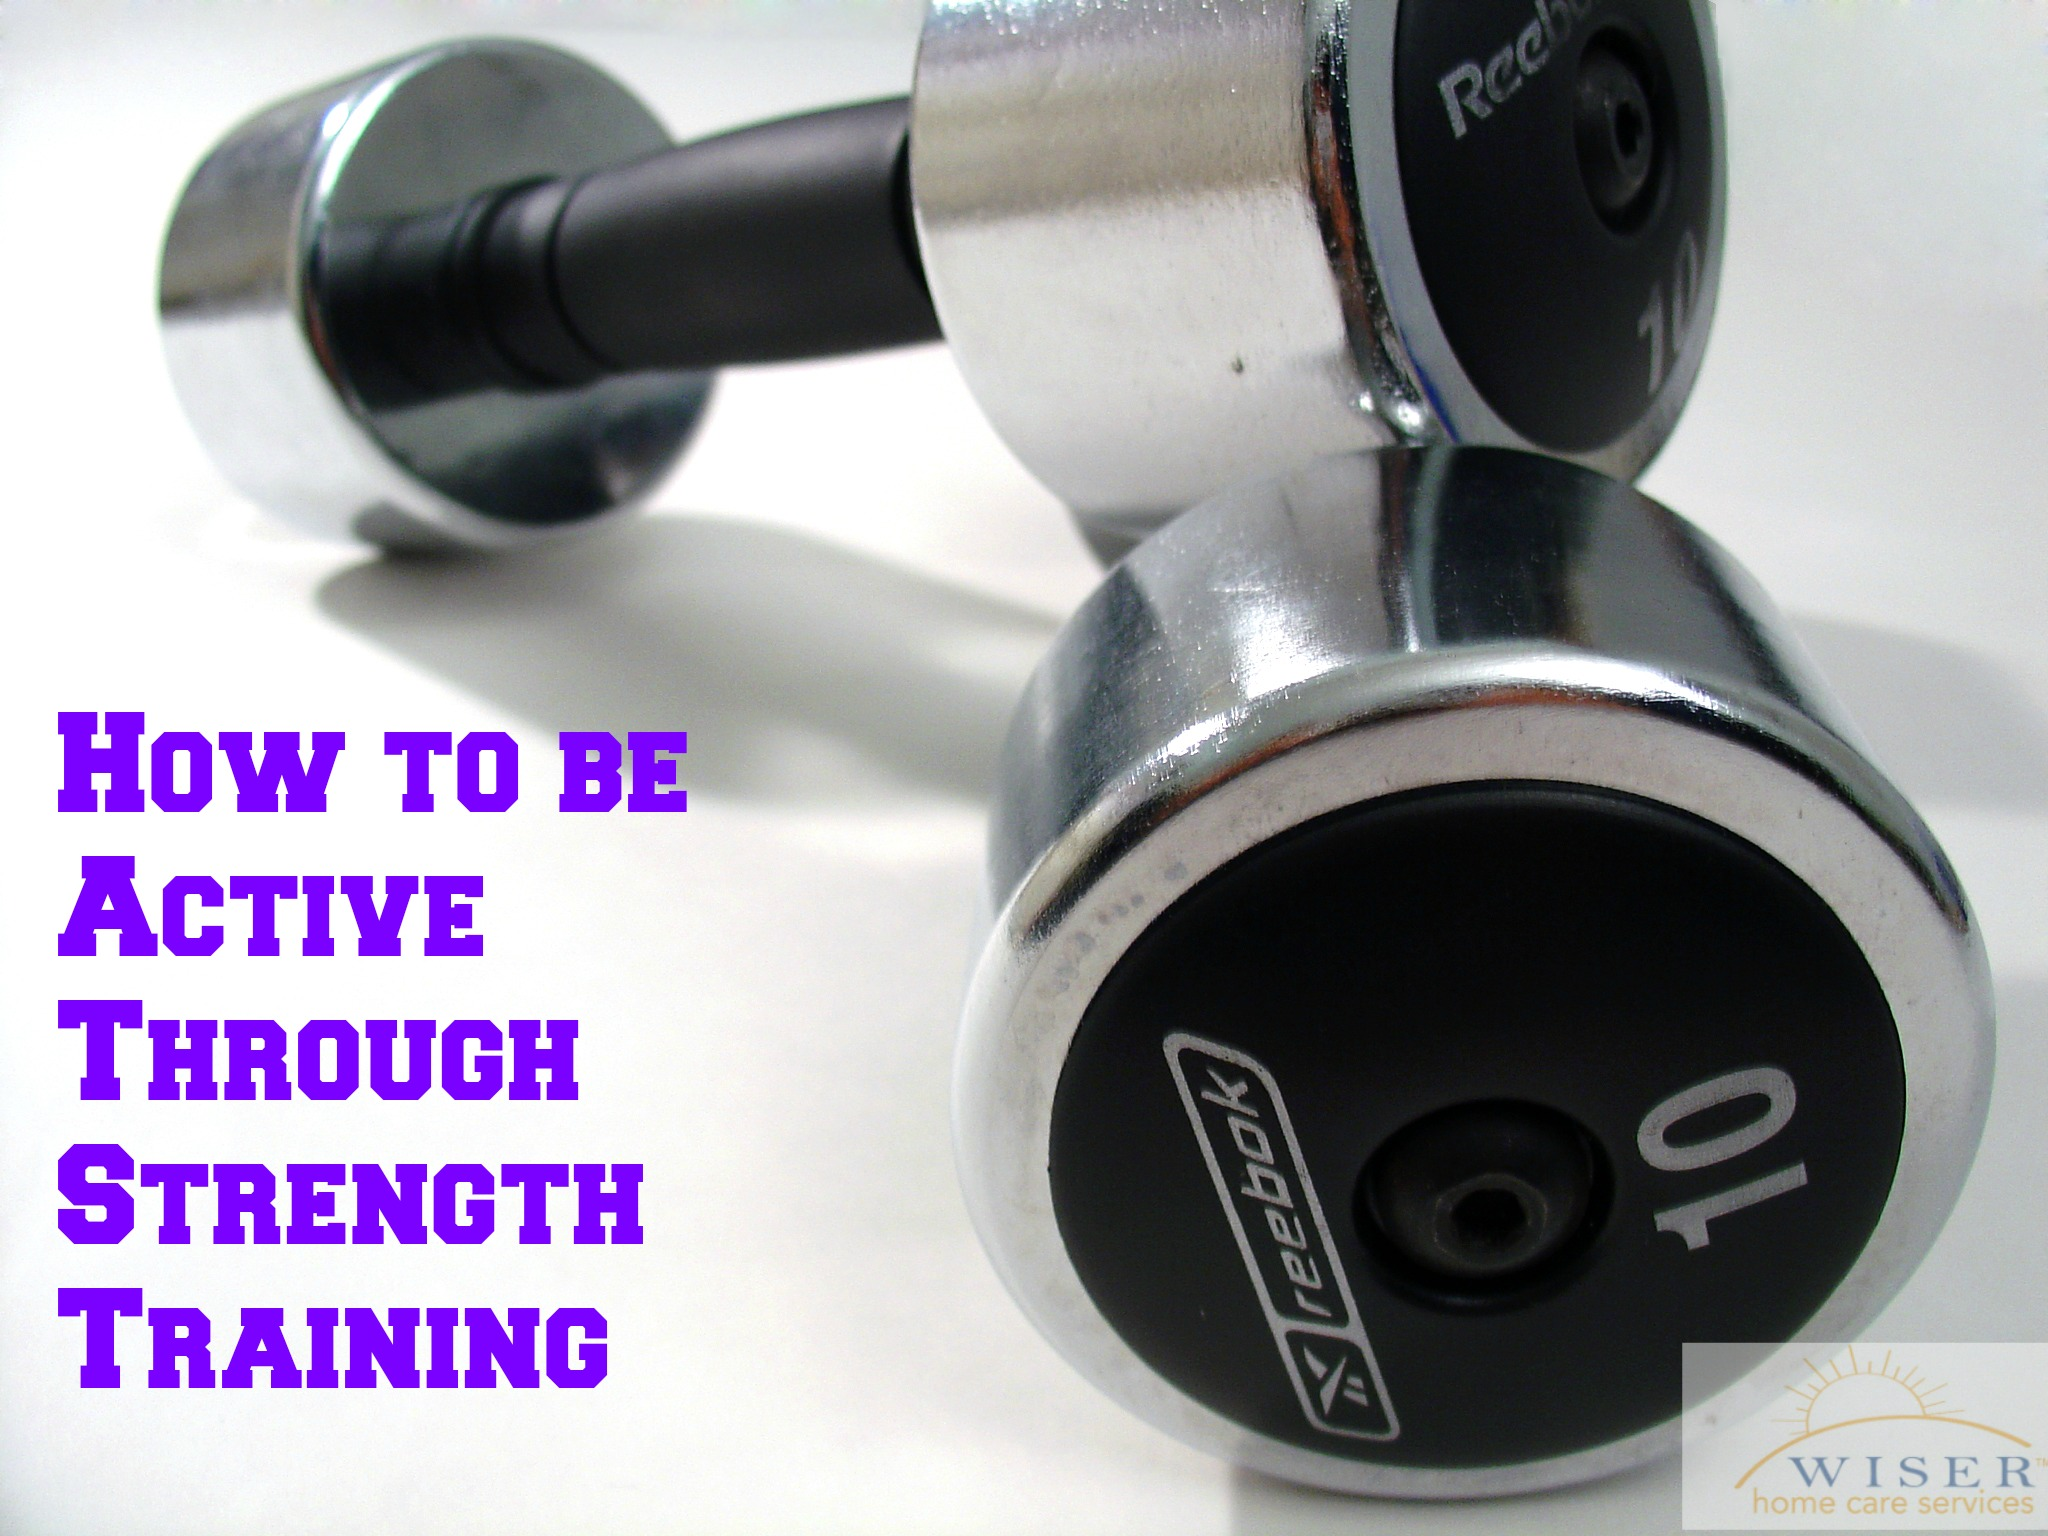 Strength training is an important component of any exercise routine for elderly or older adults. Learn about the benefits here along with exercise examples.